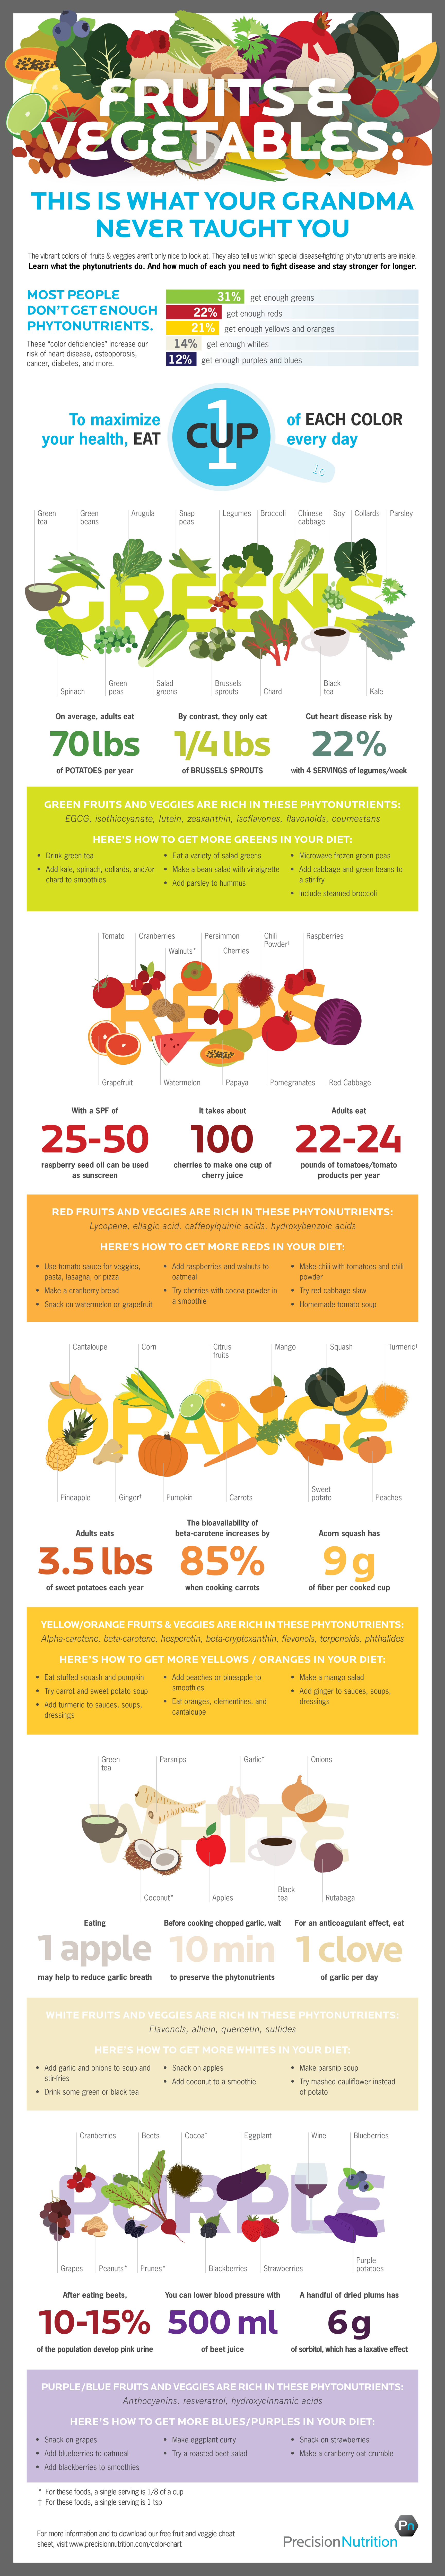 Fruit-and-Vegetable-Infographic.jpg